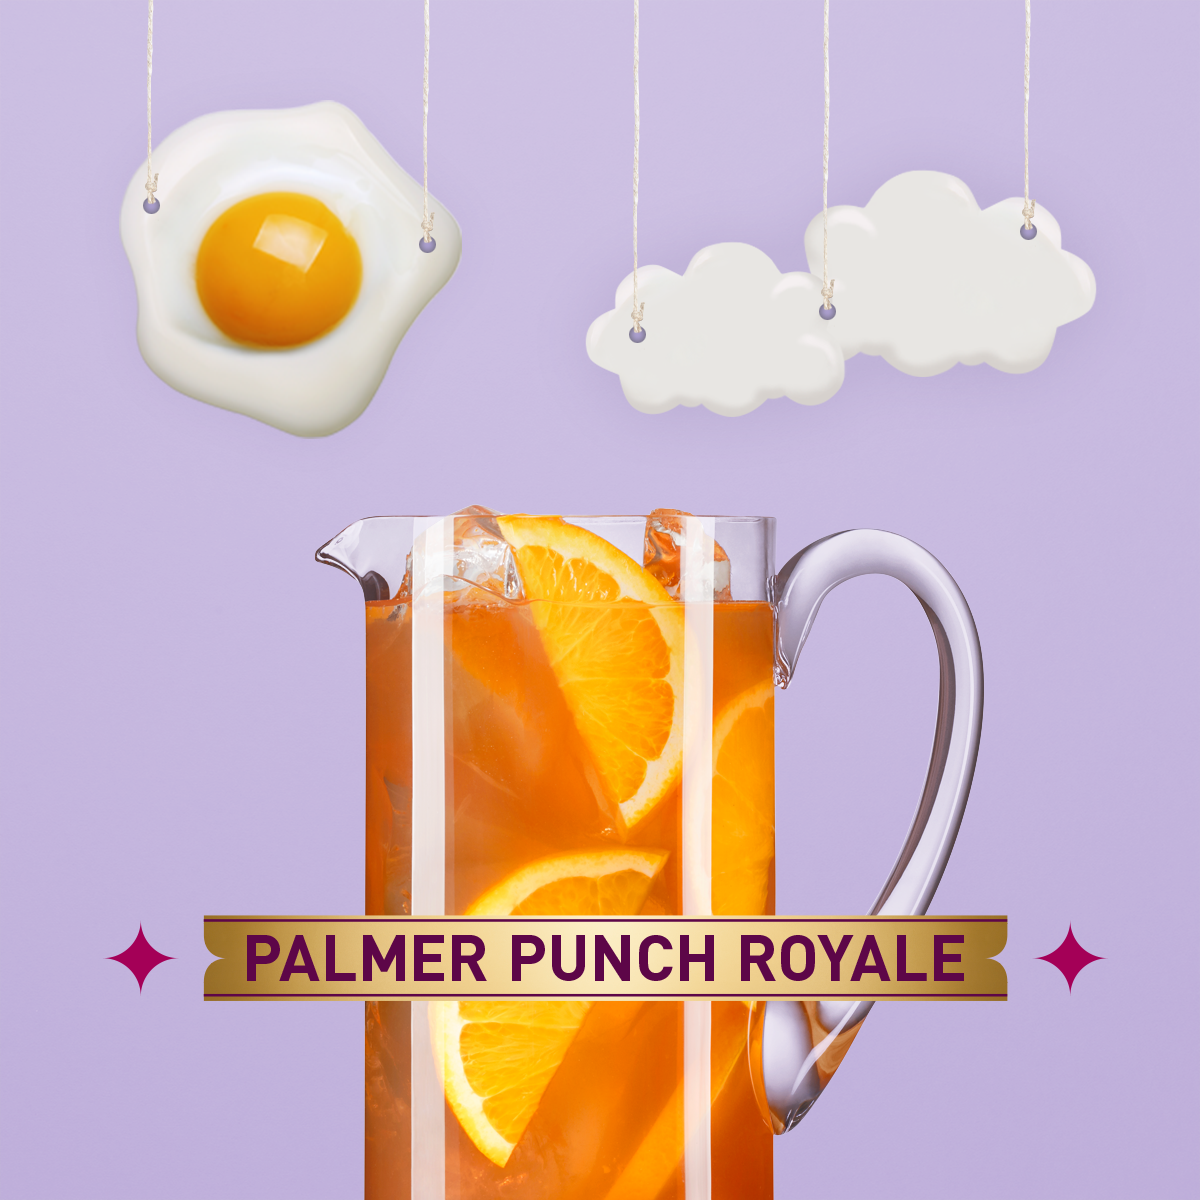 19_CHA_0001_Social_Recipe-Palmer-Punch-Royale-Egg-Clouds.png